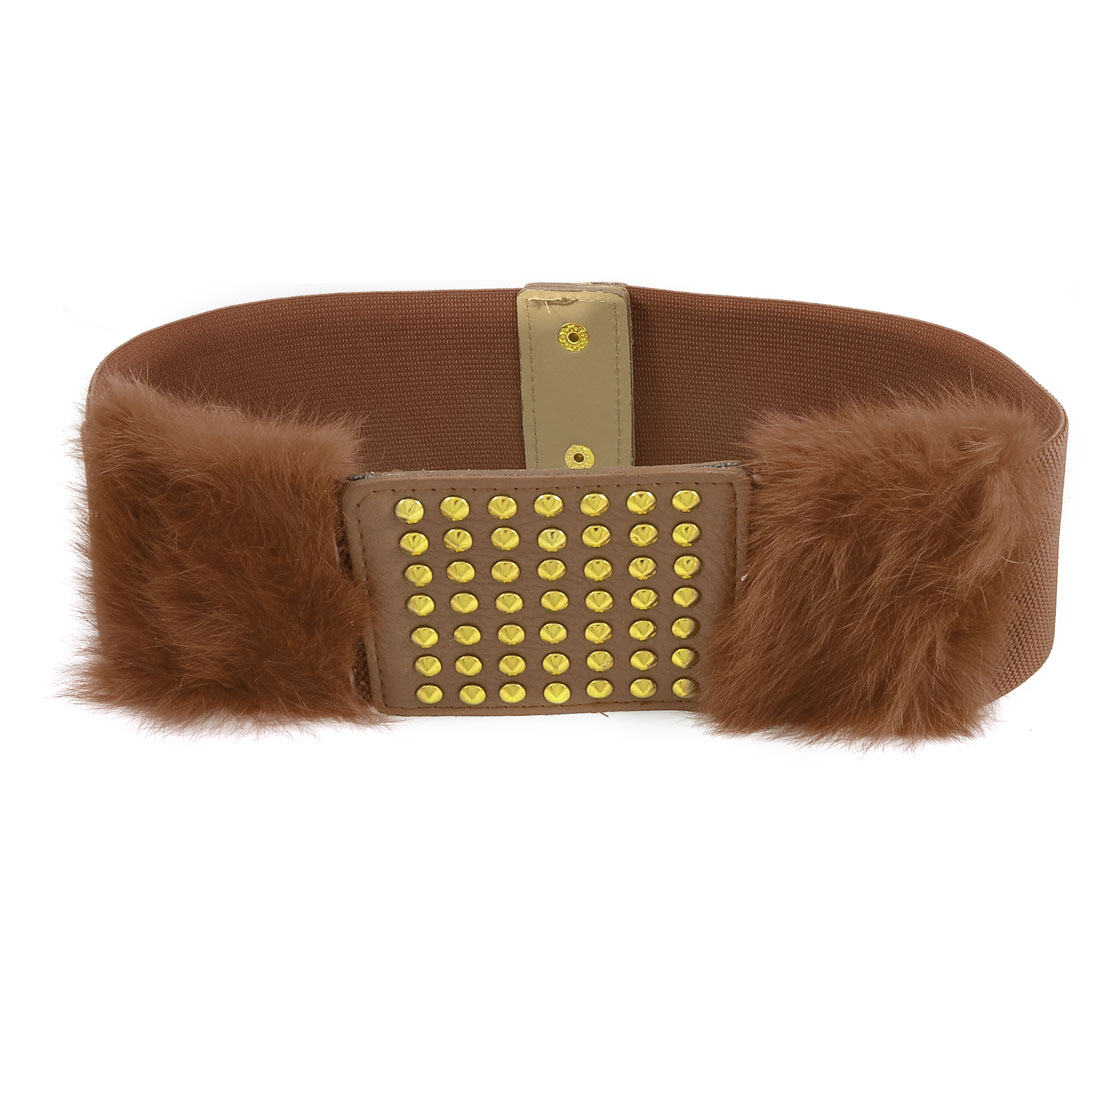 Gold Tone Studs Accent Faux Fur Brown Stretchy Waistband Belt for Lady